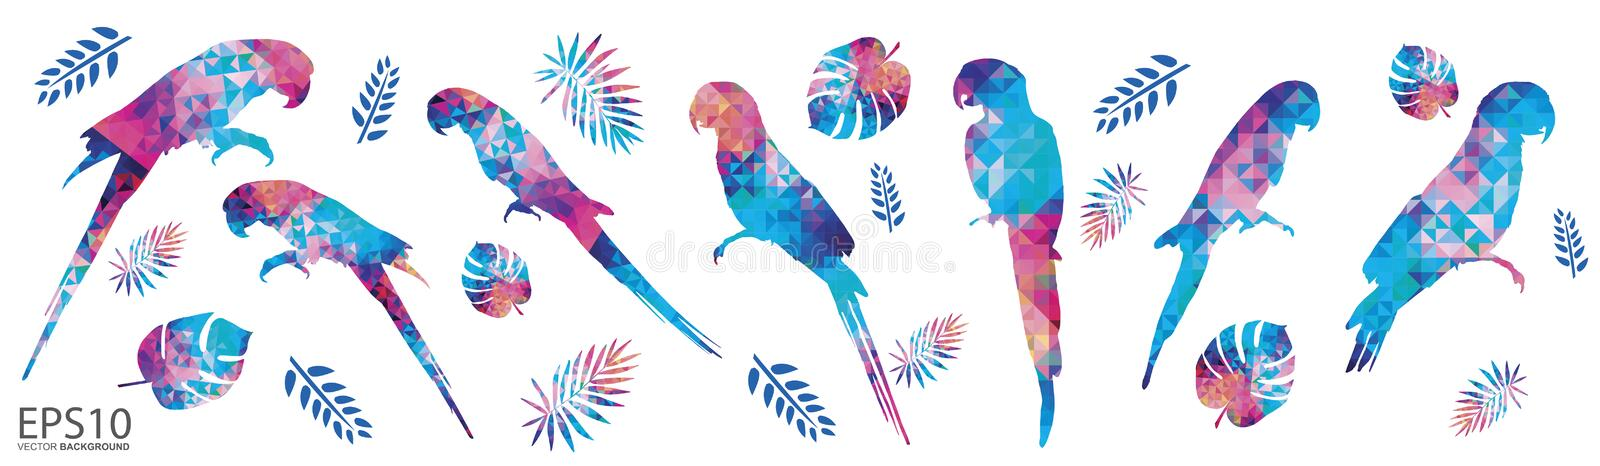 Colorful Macaw bird and tropical leaf pattern background royalty free illustration